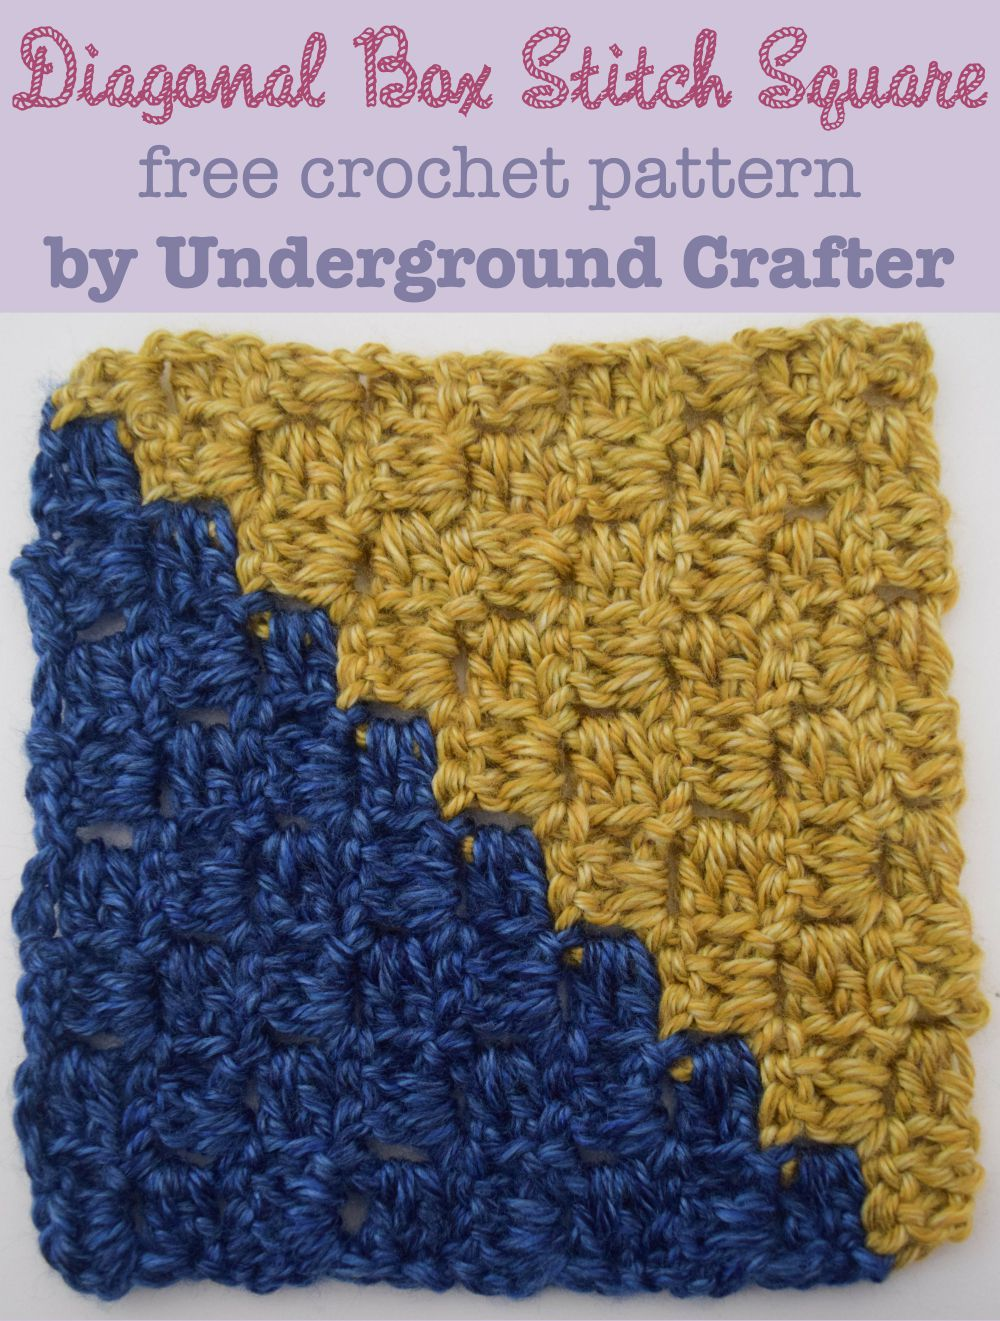 Crochet Patterns Galore - Diagonal Box Stitch Square